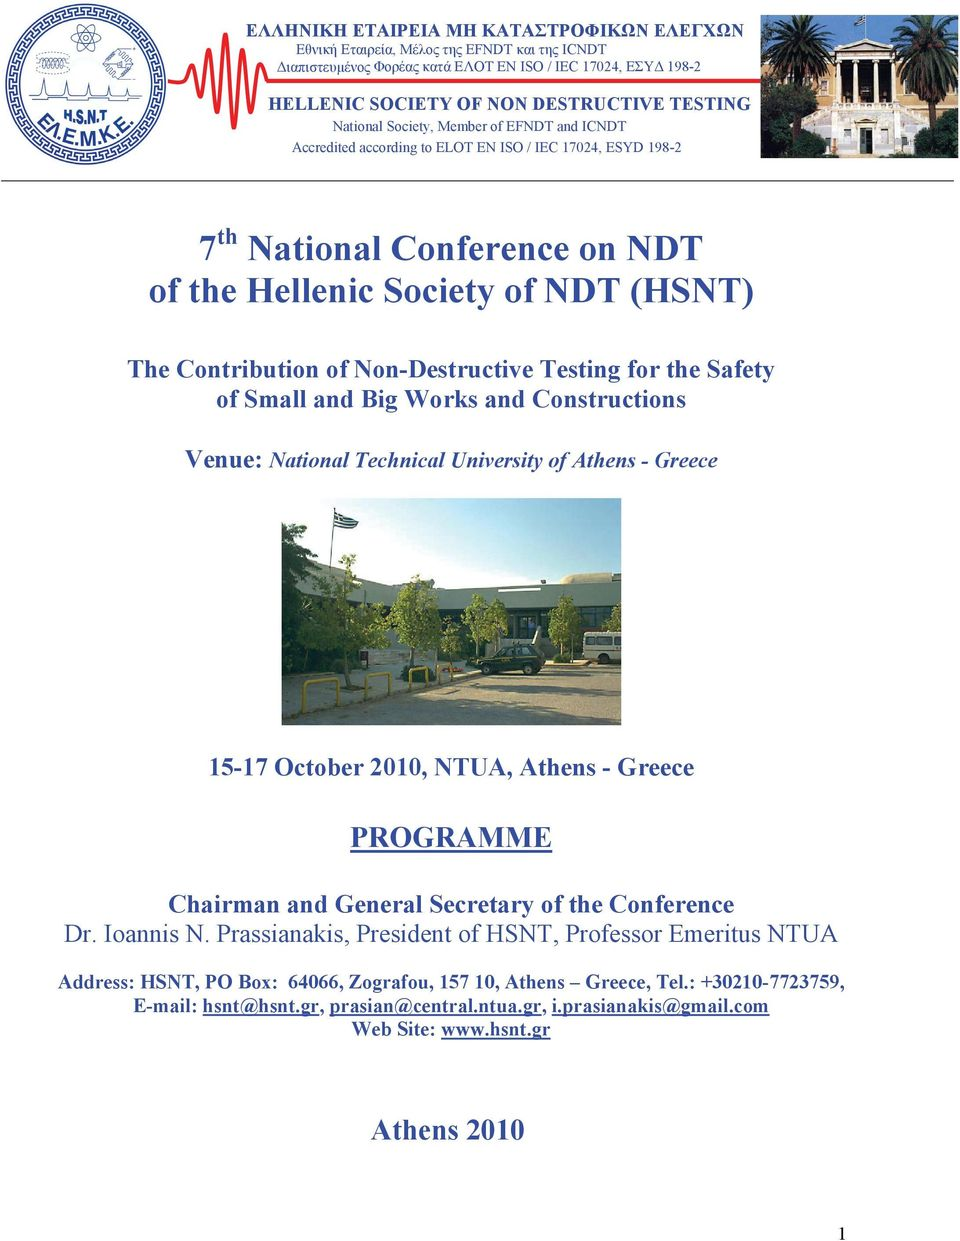 Non-Destructive Testing for the Safety of Small and Big Works and Constructions Venue: National Technical University of Athens - Greece 15-17 October 2010, NTUA, Athens - Greece PROGRAMME Chairman